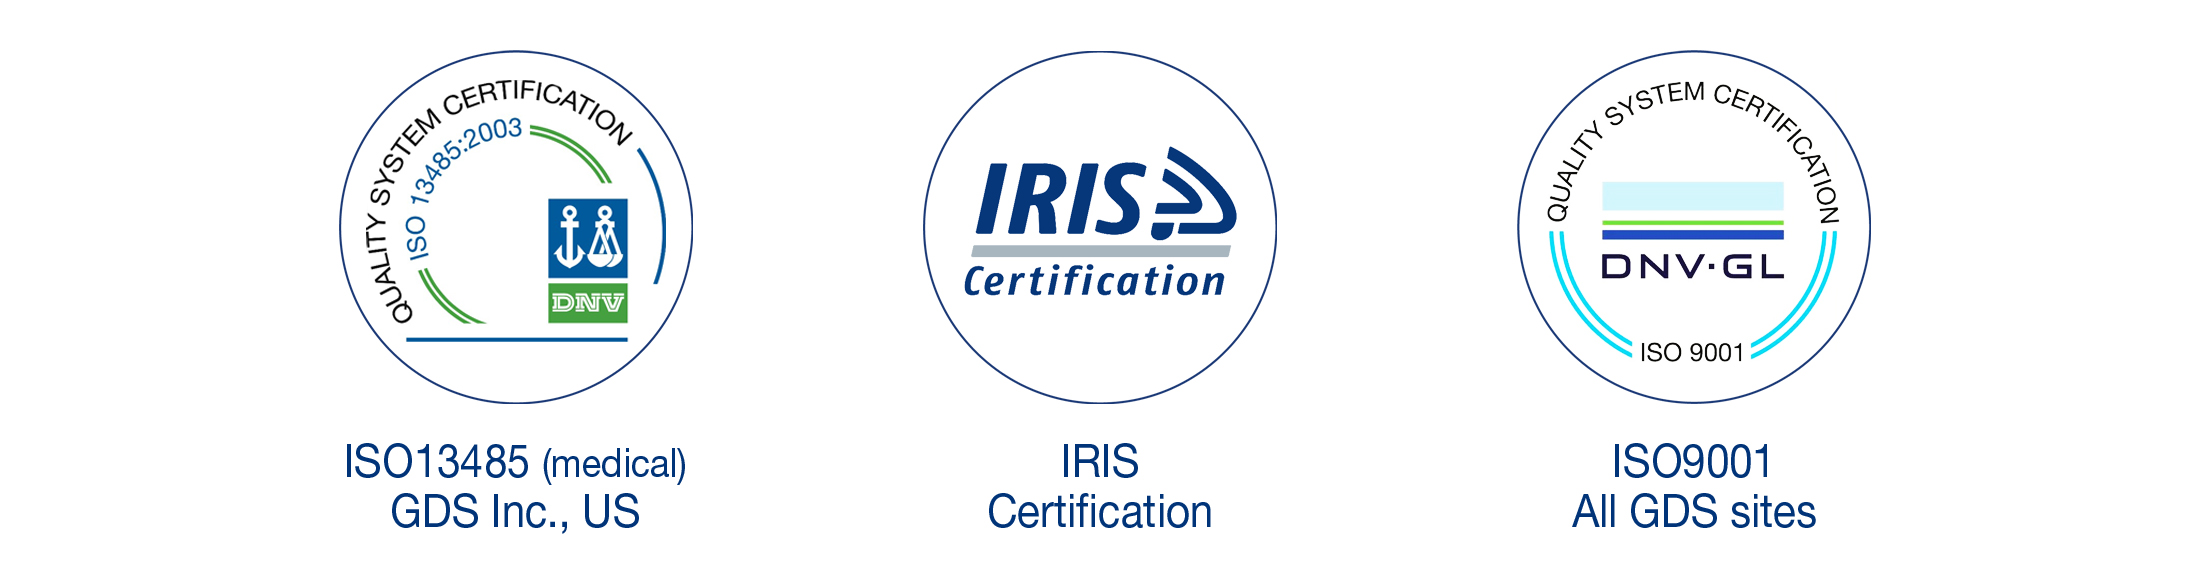 gds-all-quality-certifications_dnv